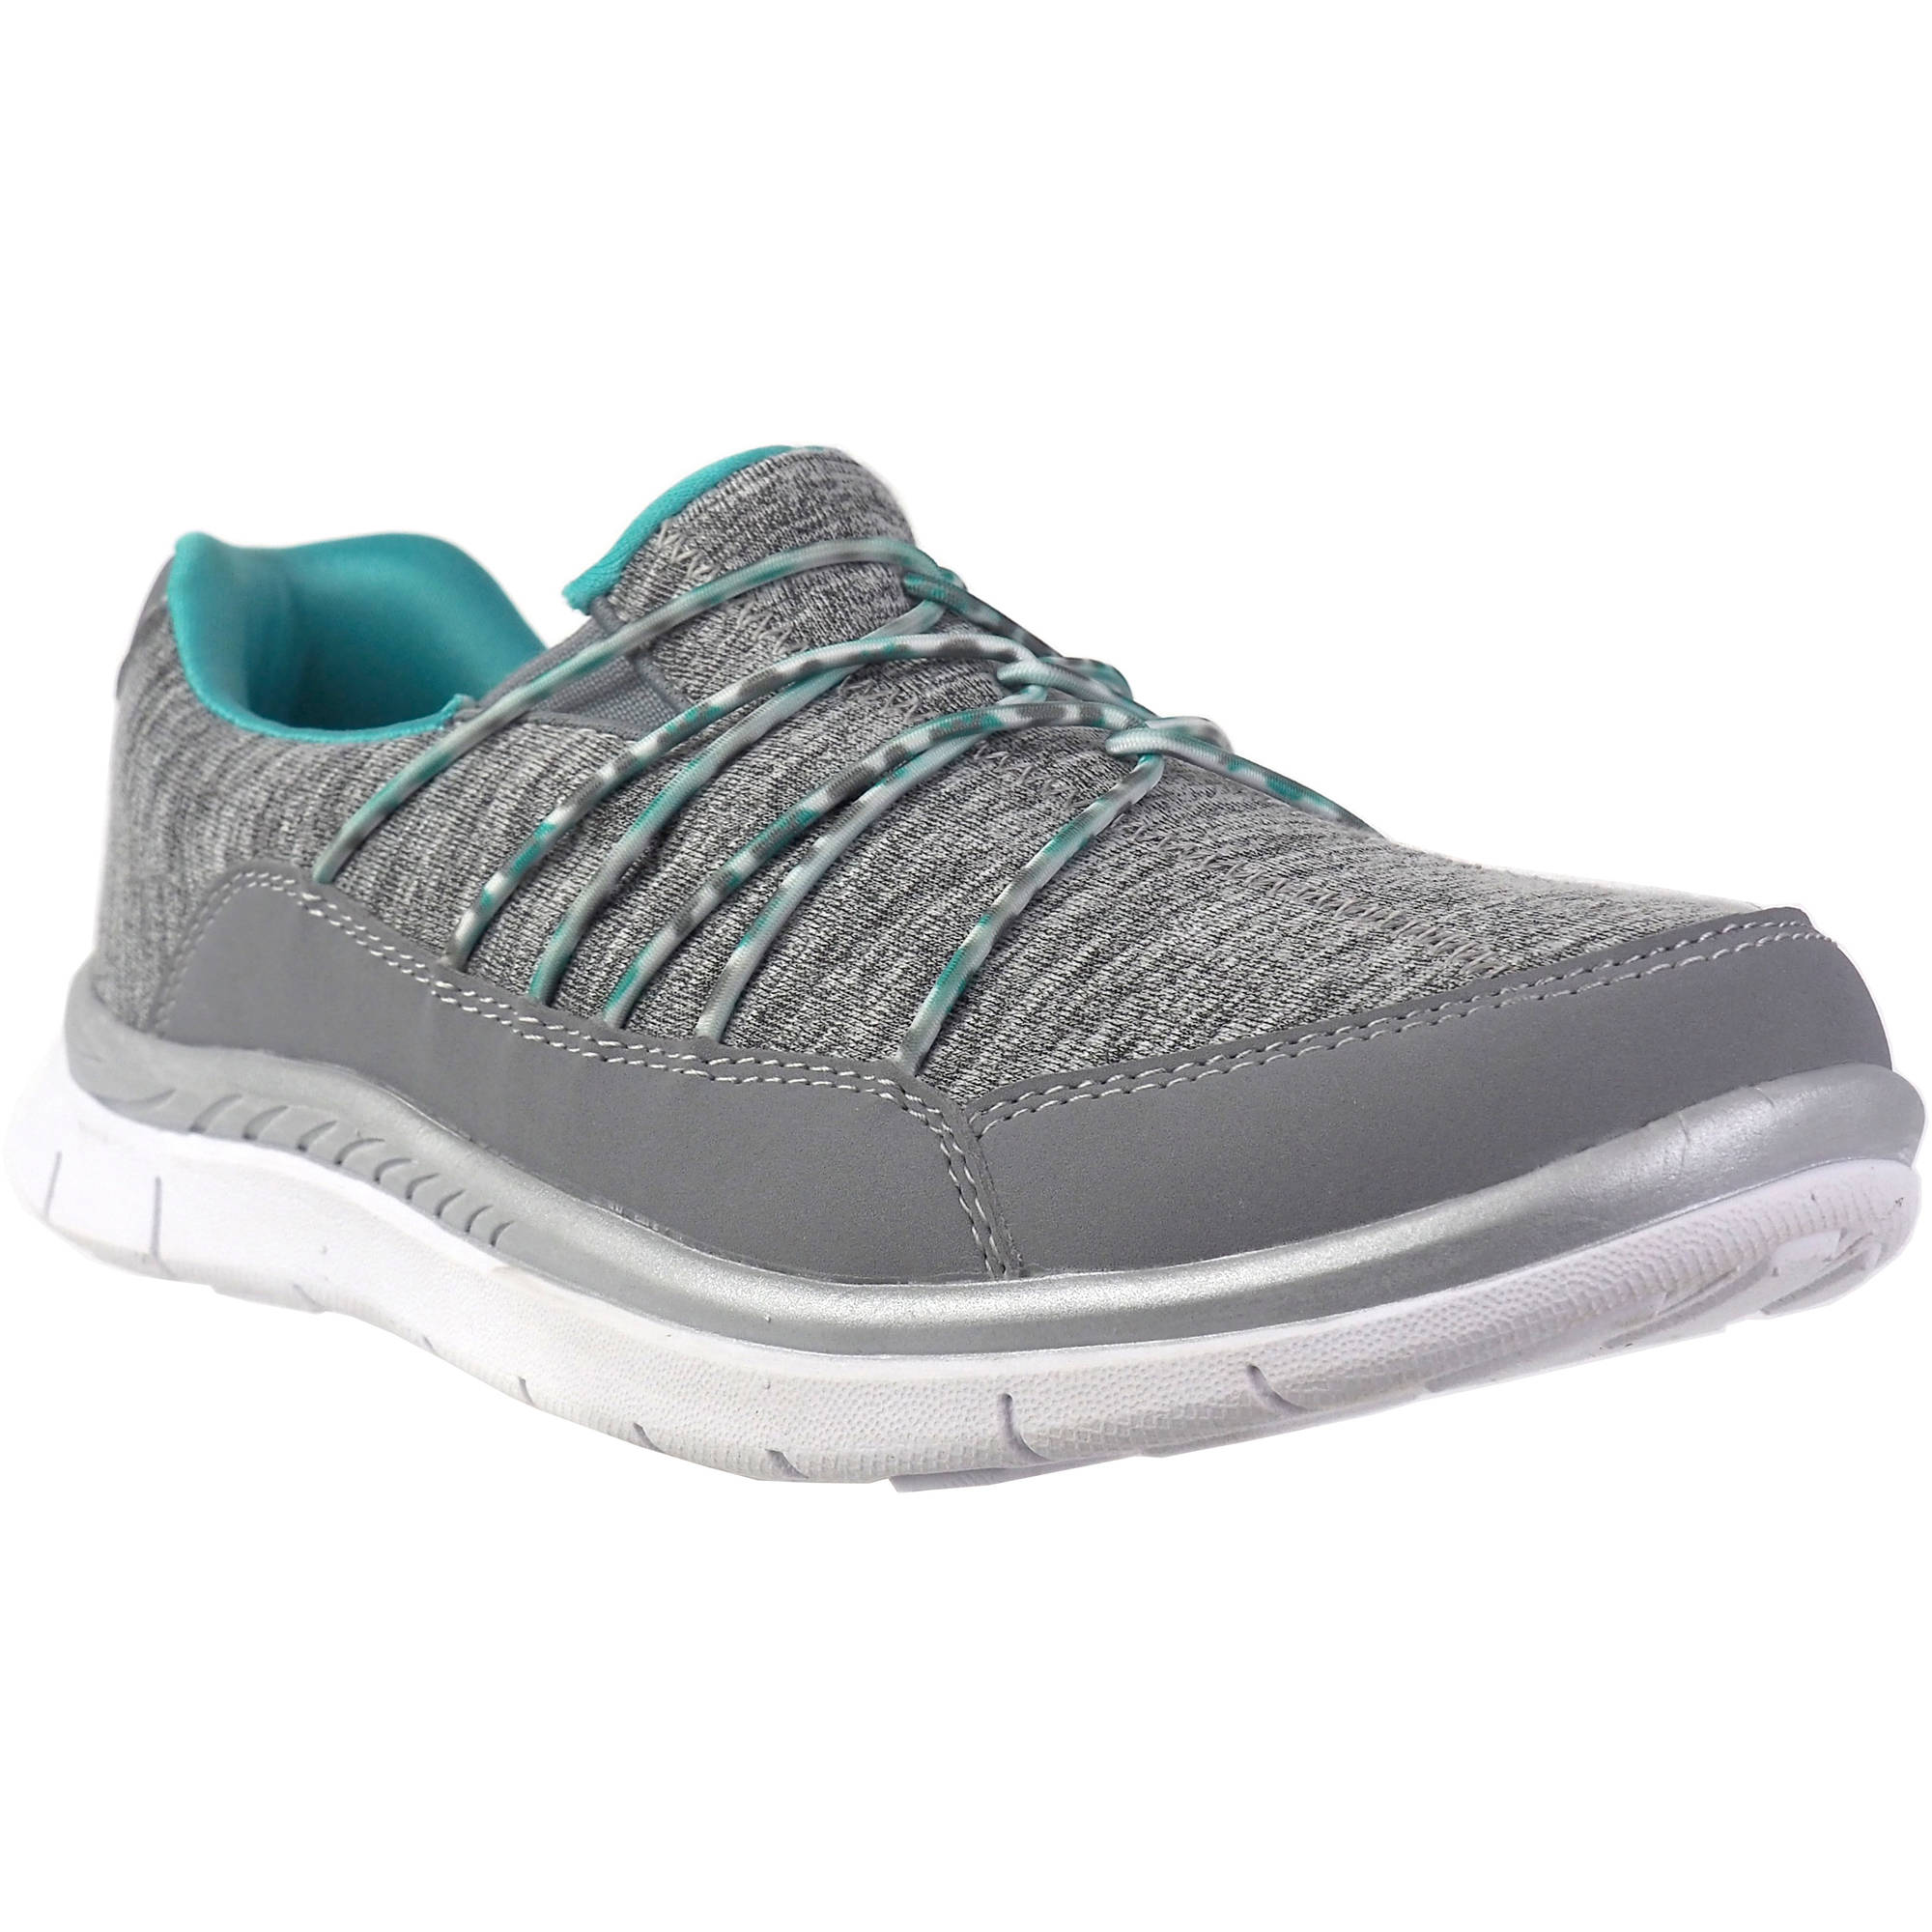 Danskin Now Women's Athletic Bungee Shoe